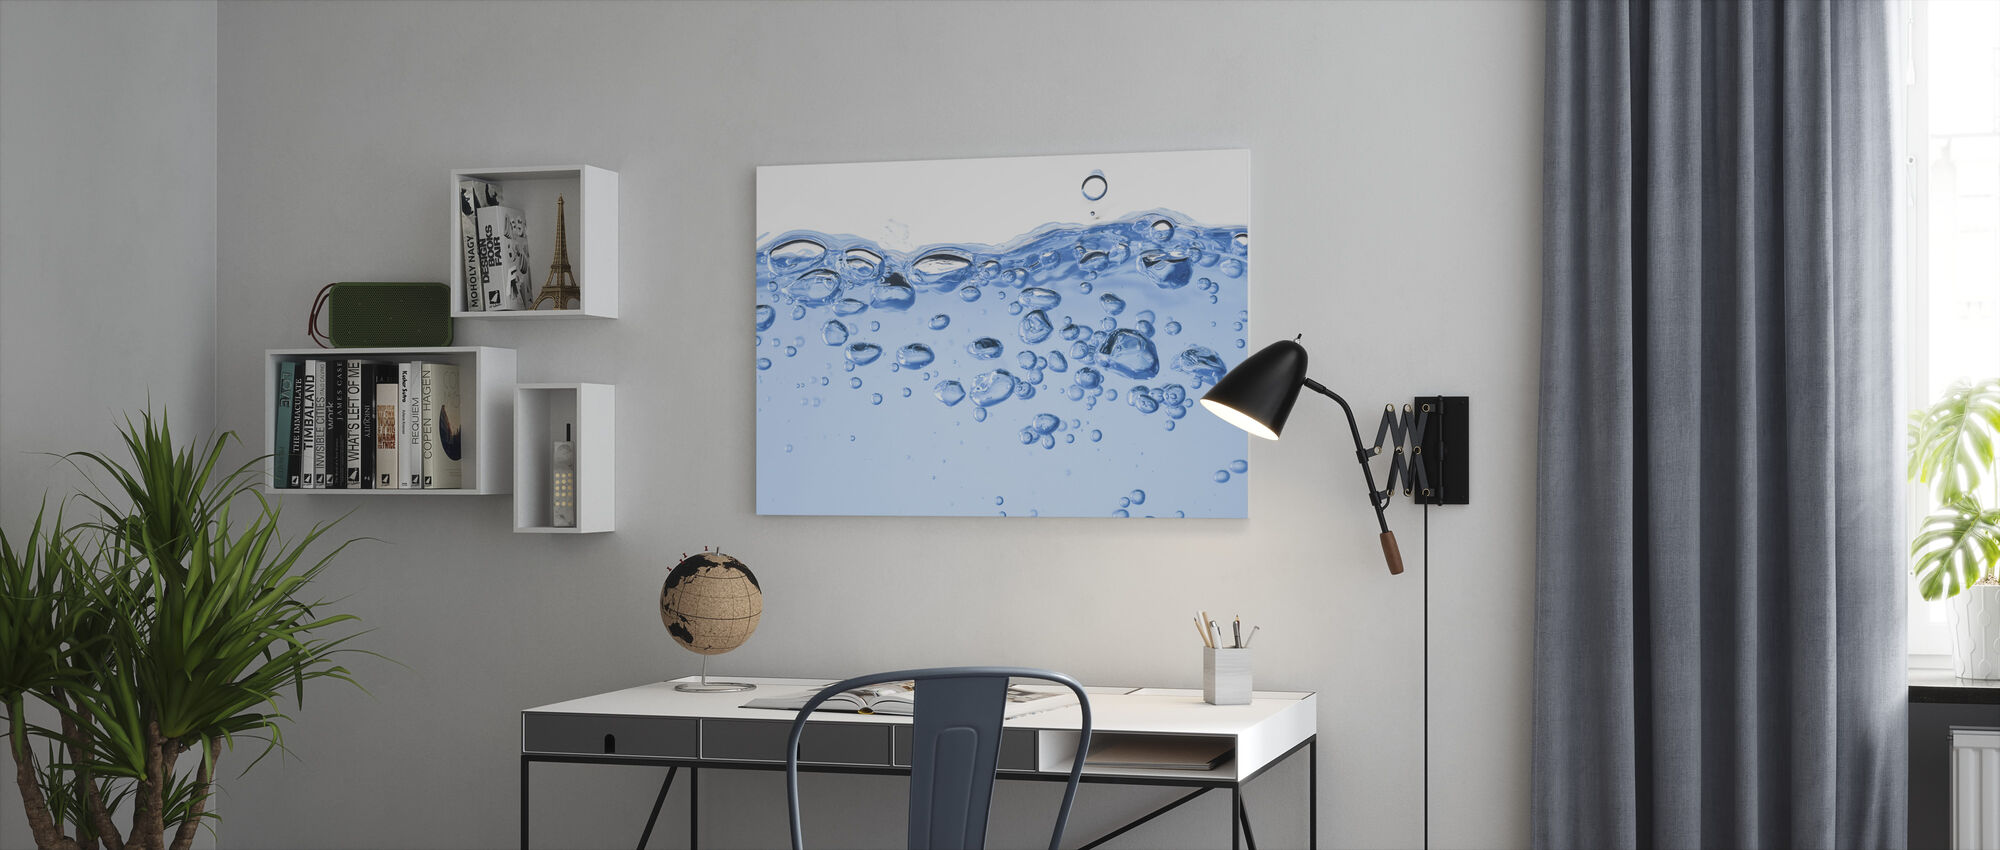 Splashing Water - Canvas print - Office